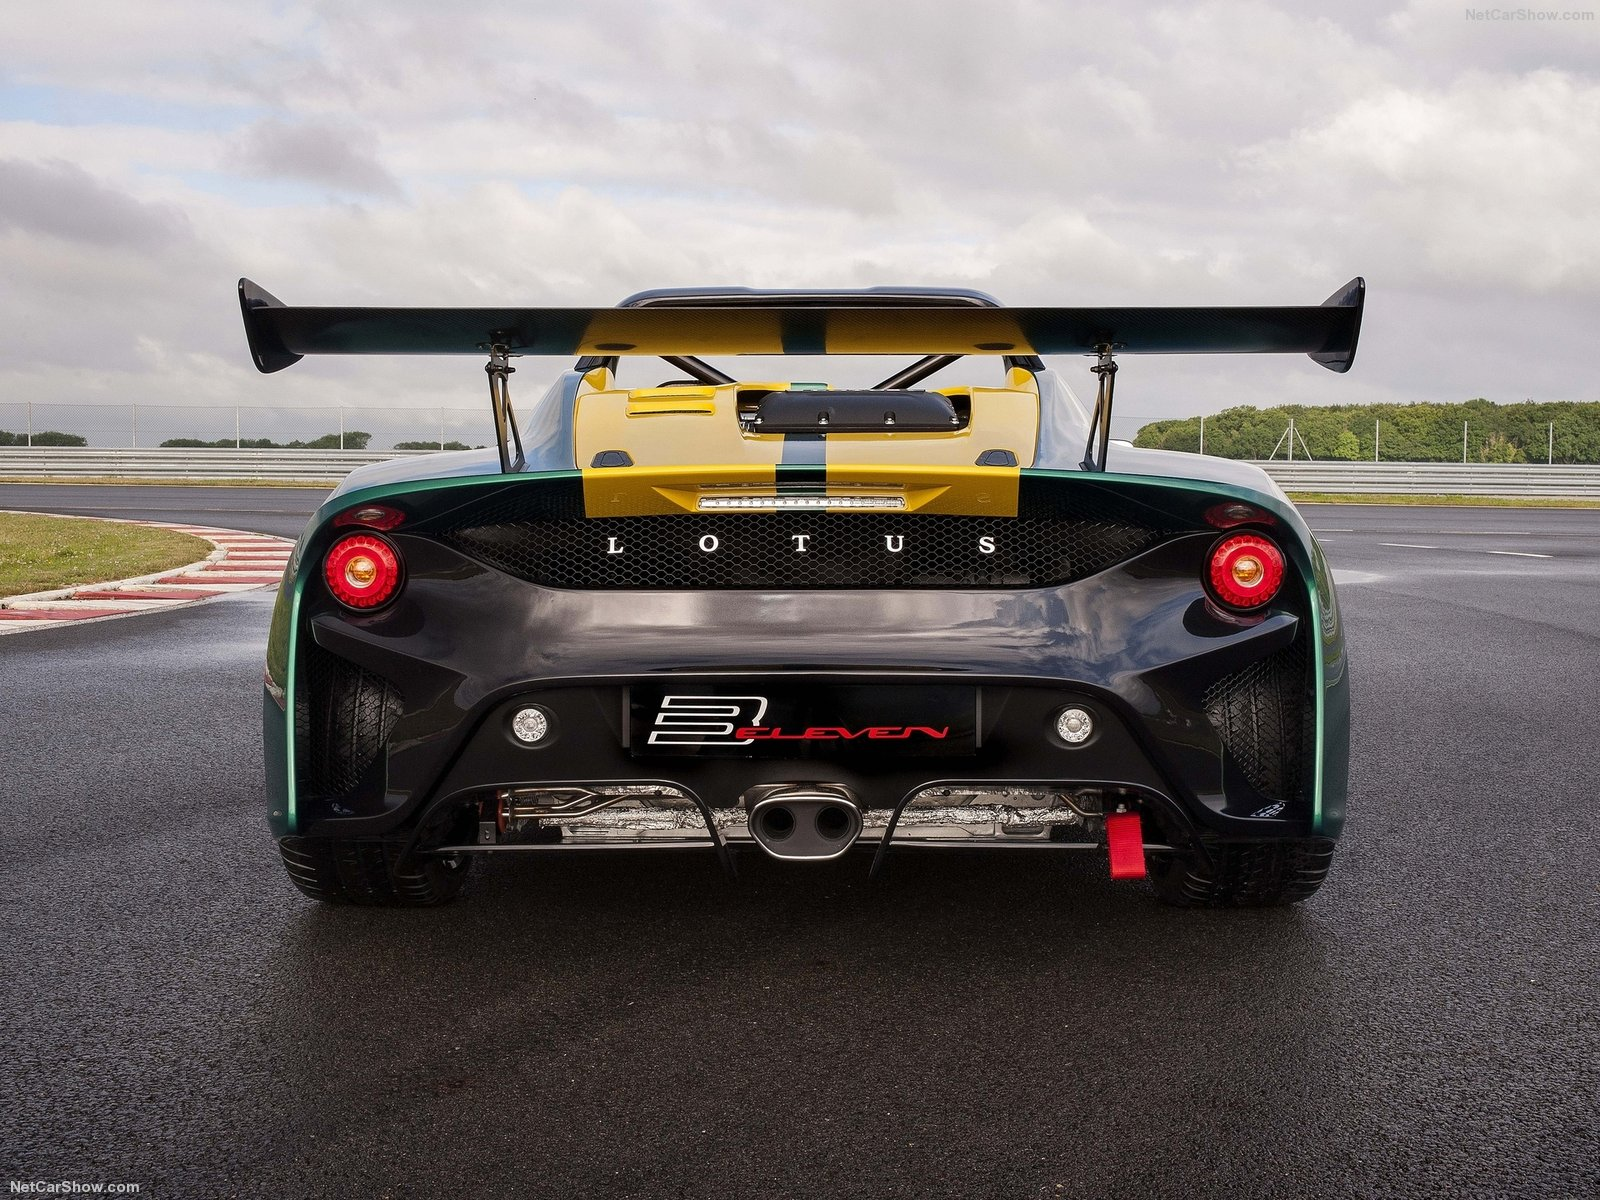 Lotus-3-Eleven_2016_1600x1200_wallpaper_07